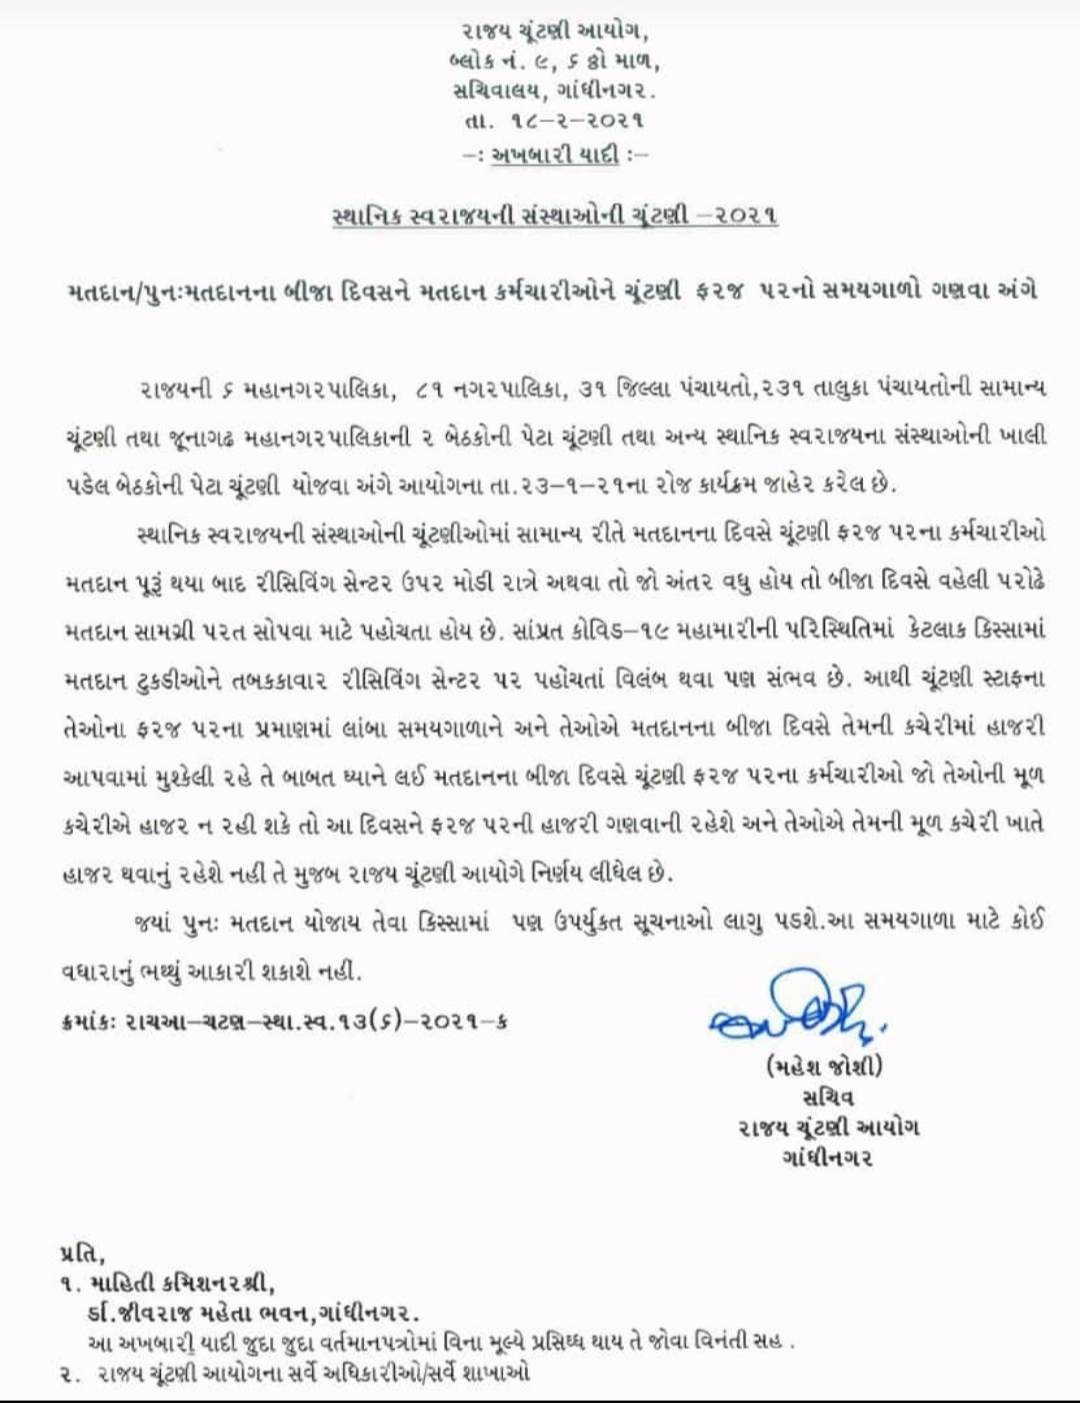 Regarding counting the period of election duty on polling staff on the second day of polling / re-polling